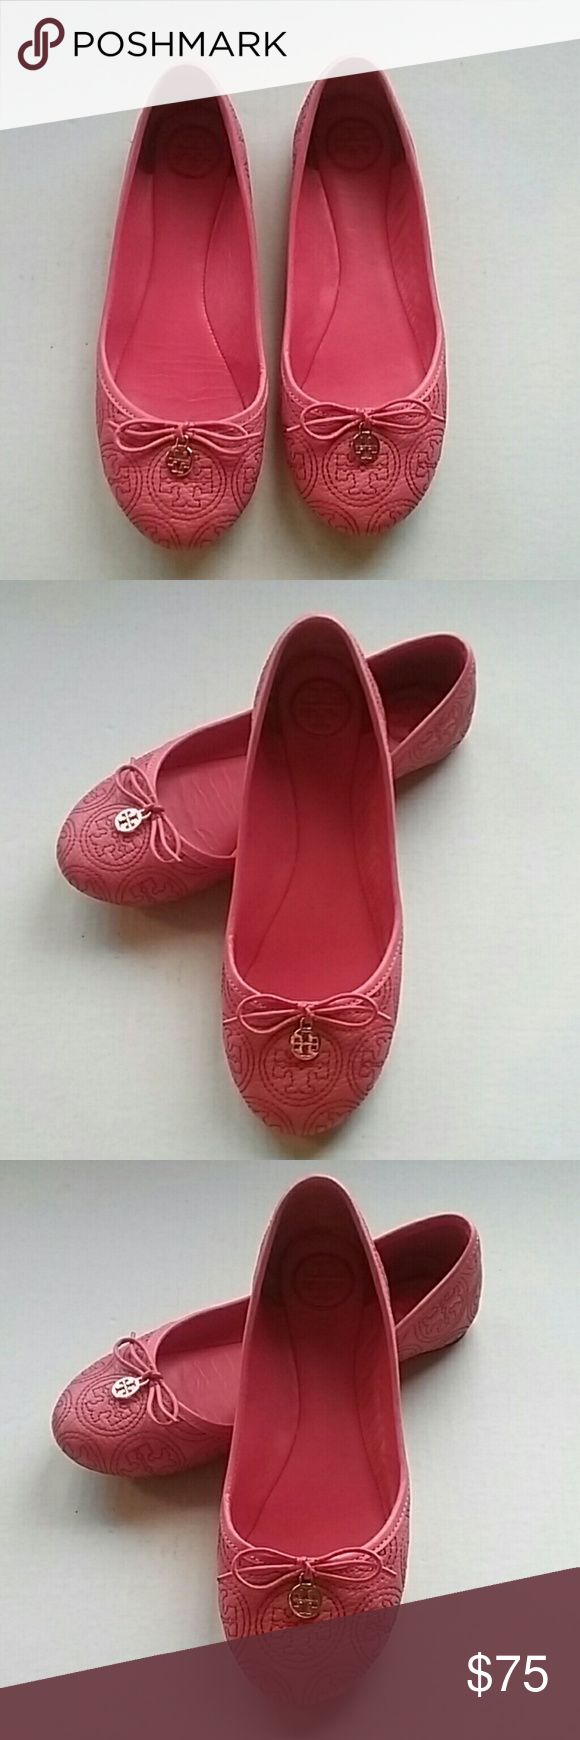 TORI BURCH PINK LEATHER FLATS LOAFERS SHOES 8.5 This is a very nicr gently preowned pink leather emblem shoes loafers. Size 7.5. They have been cleaned and sanitized for you. There is some wear as they are preowned but there os lots of wear left in these shoes. tori burch Shoes Flats & Loafers